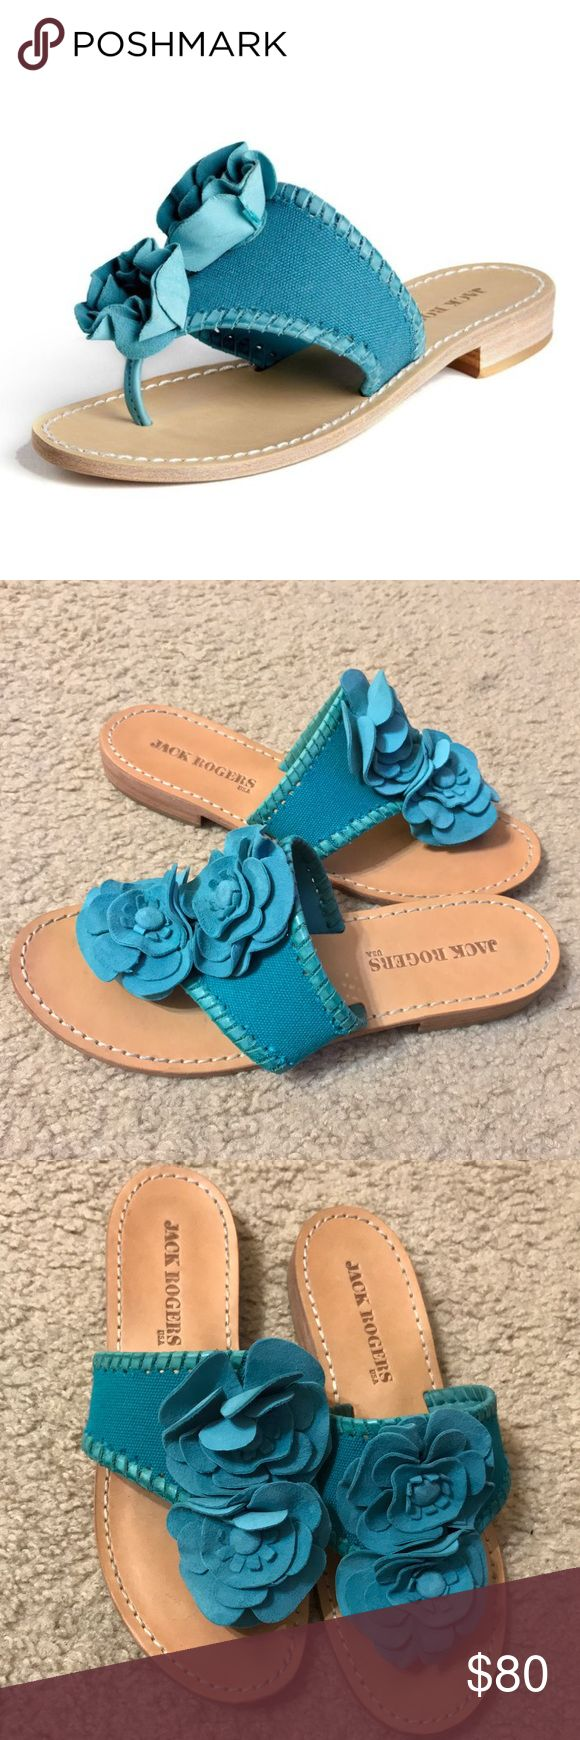 Jack Rodgers Wellesley Teal Flower Sandals Jack Rogers Wellesley teal two flower sandals in a women's size 8. They look like they're in perfect, brand new condition on the top soles- the only wear and tear are on the bottom of the shoes! Please see the photos and if you need more information feel free to ask 👡👍🏼💕 Jack Rogers Shoes Sandals